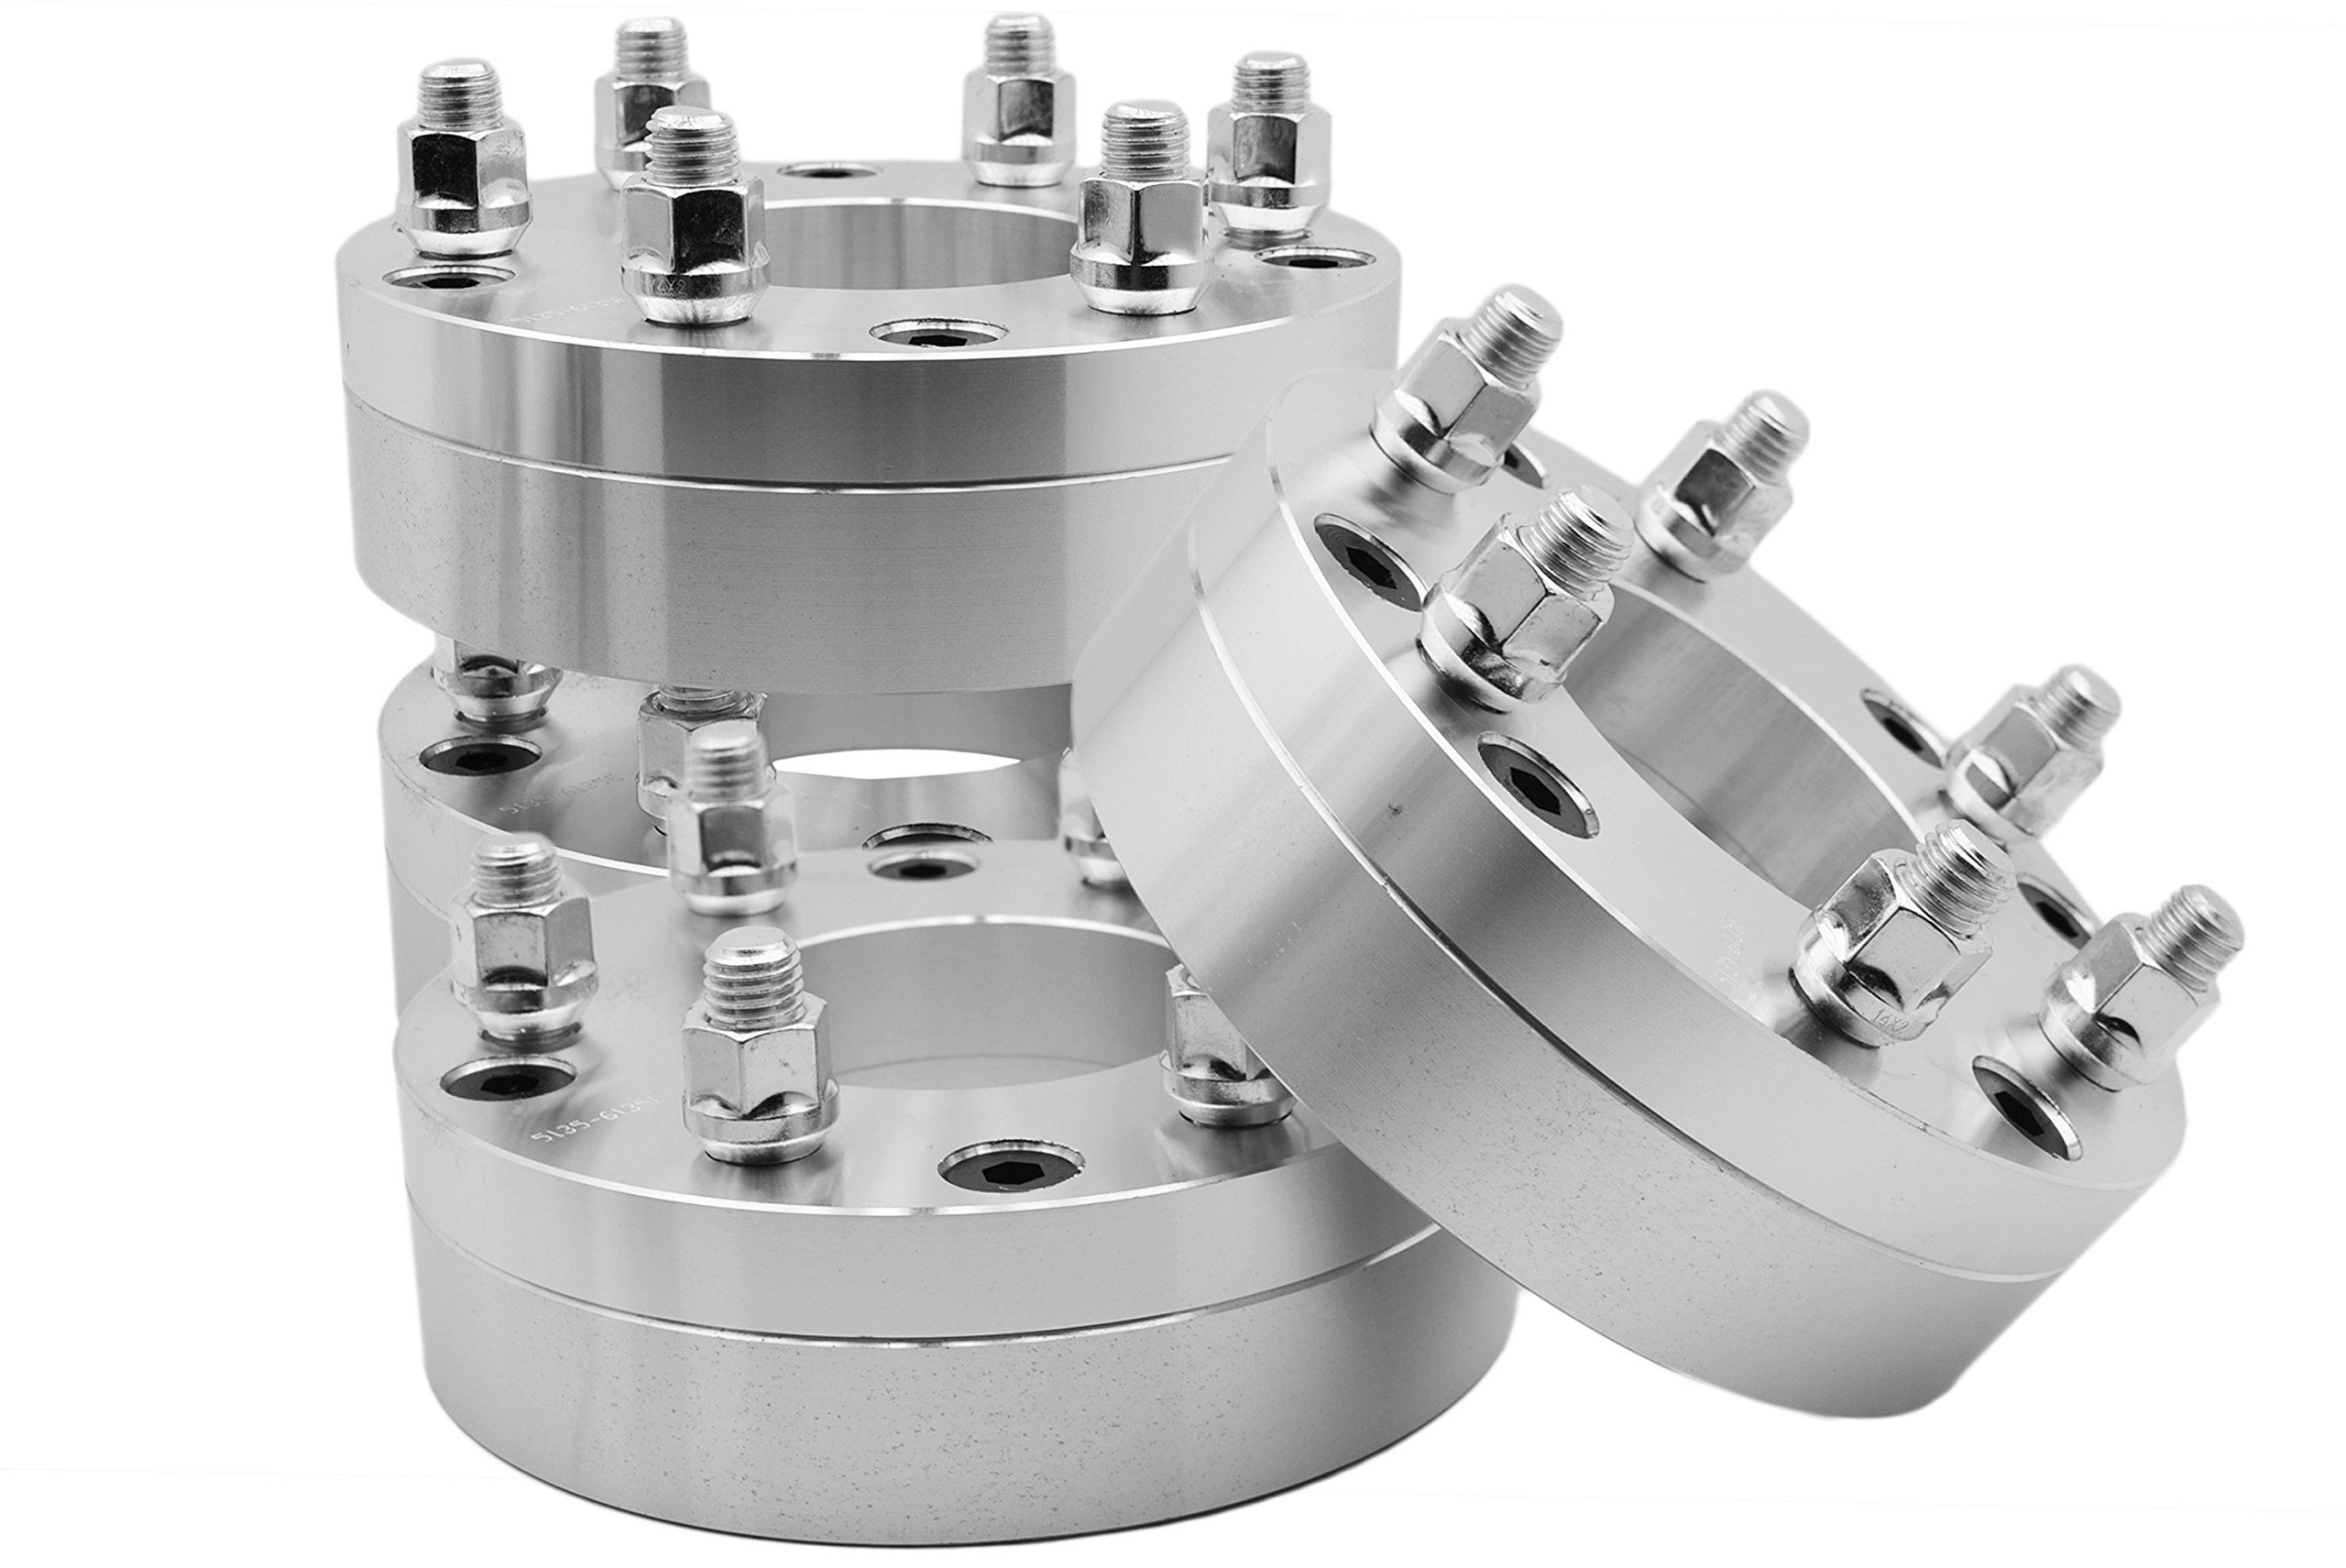 4 Pc 5x5 To 6x5 5 5 Lug To 6 Lug Wheel Spacers Adapters